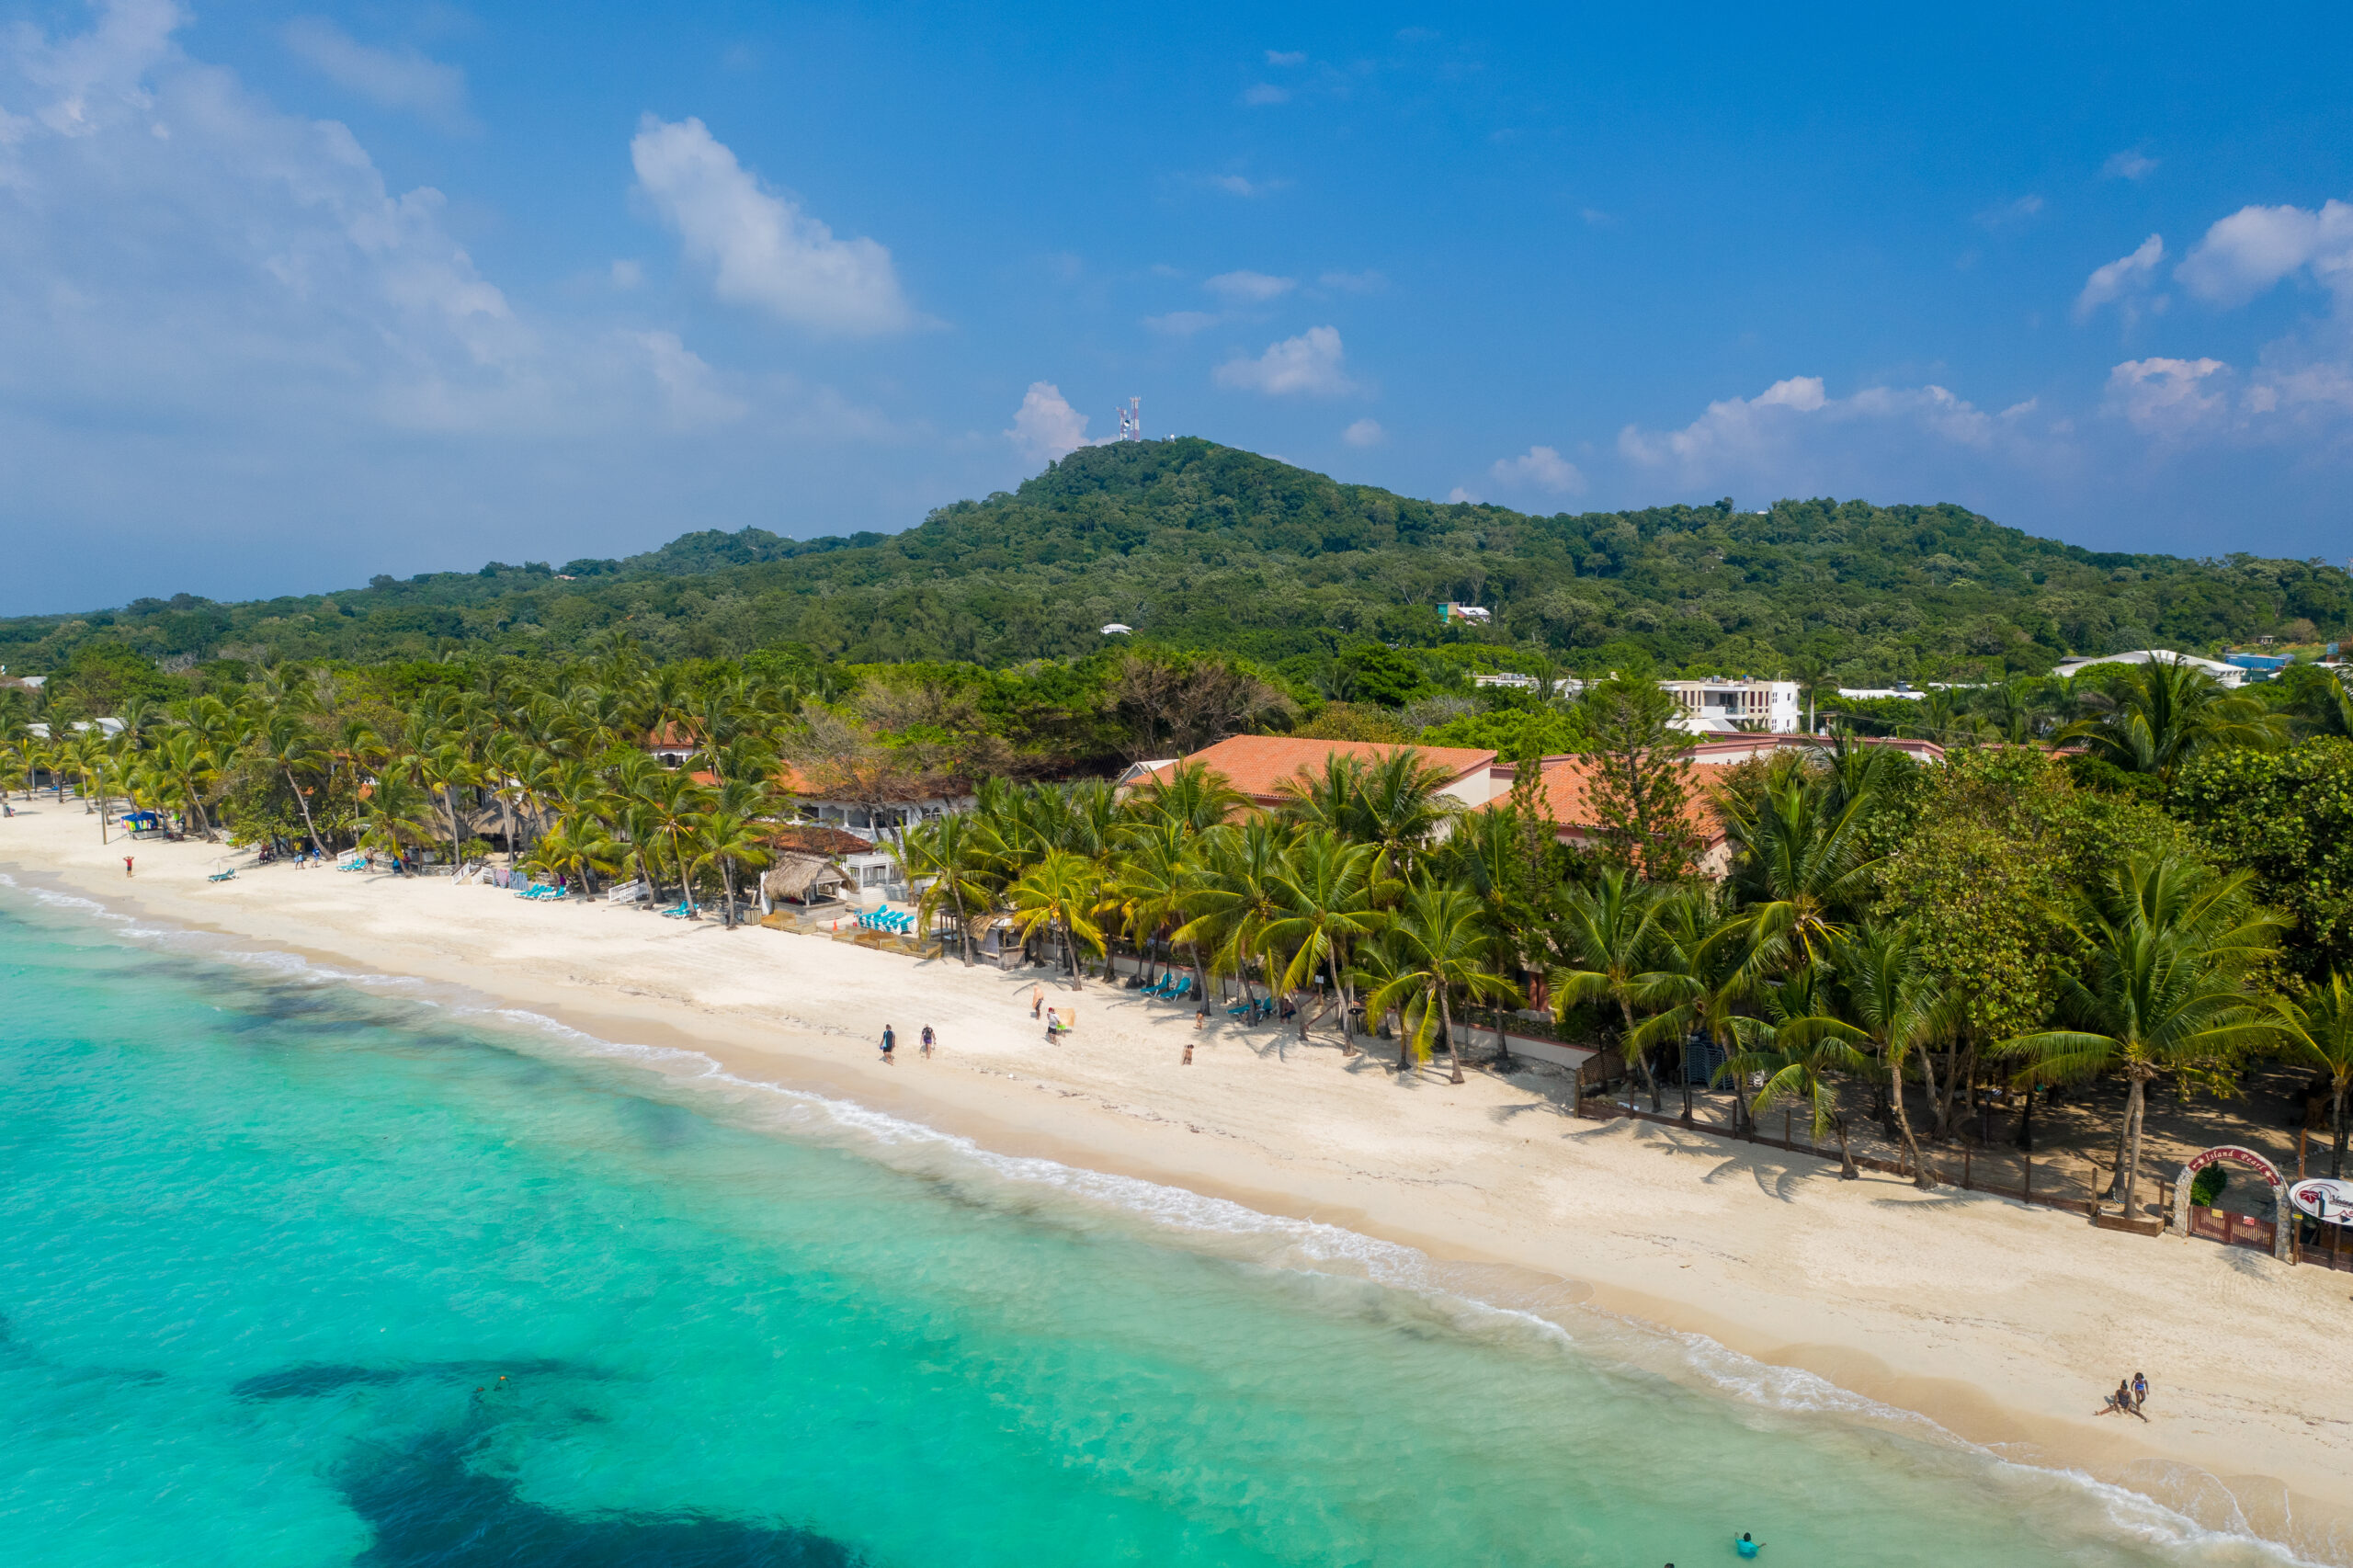 Real estate agent Jorge Chavez can help you find your island dream property on Roatan island in the Caribbean